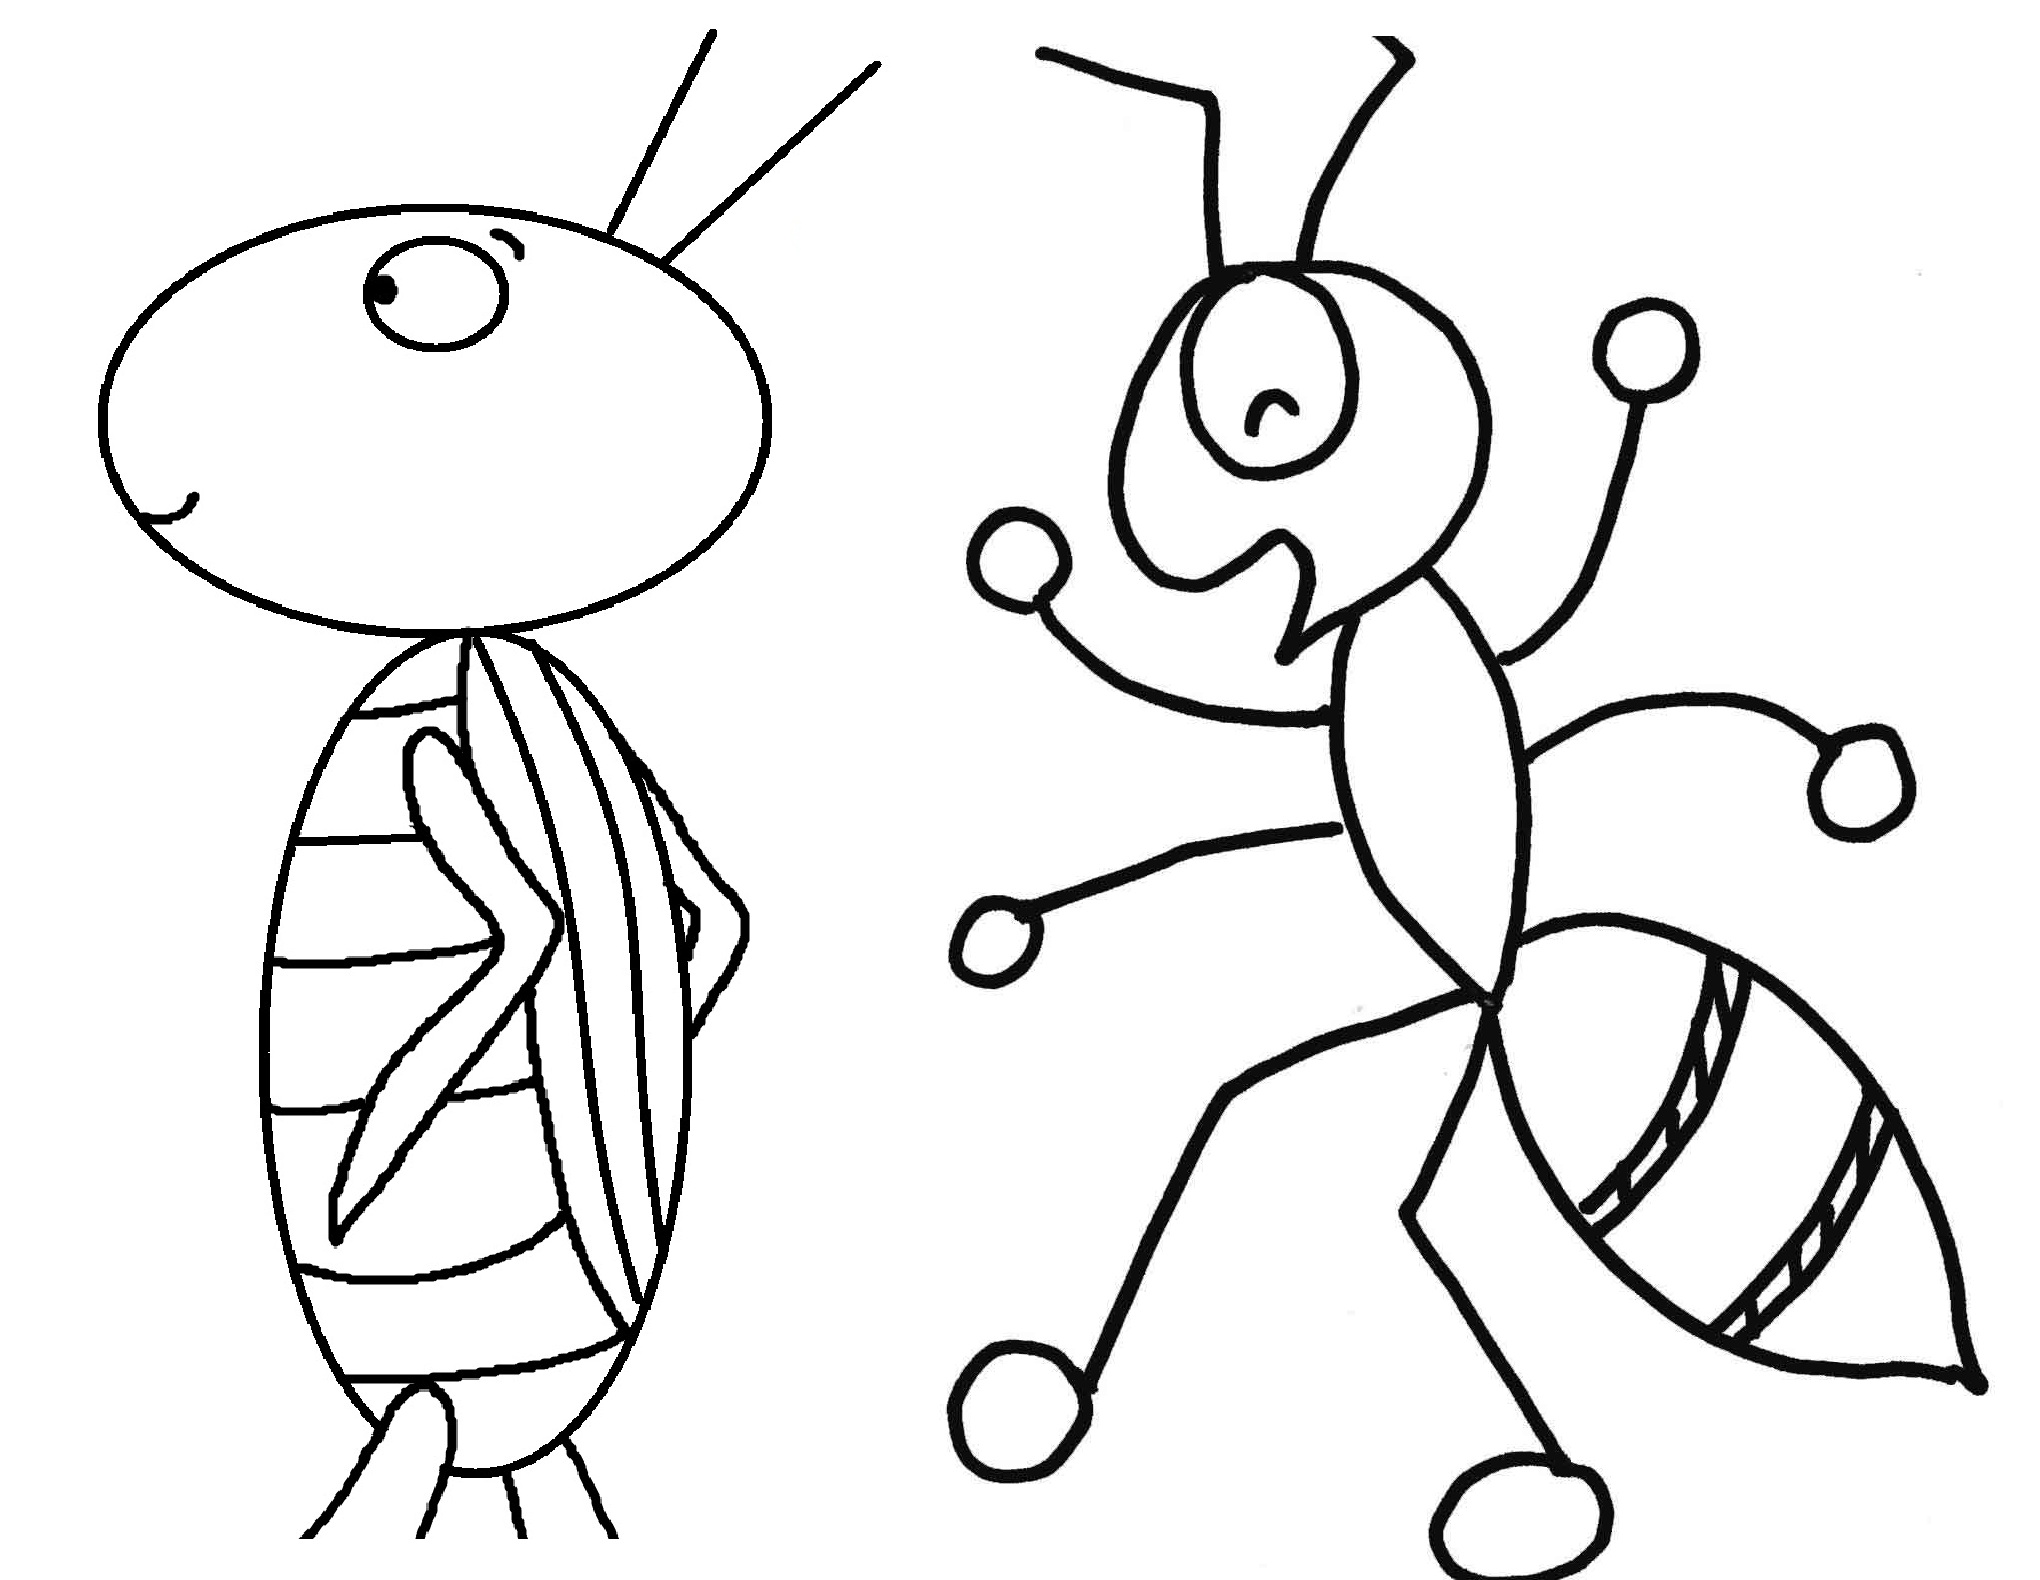 Grasshopper Drawing Outline at GetDrawings.com   Free for personal ...